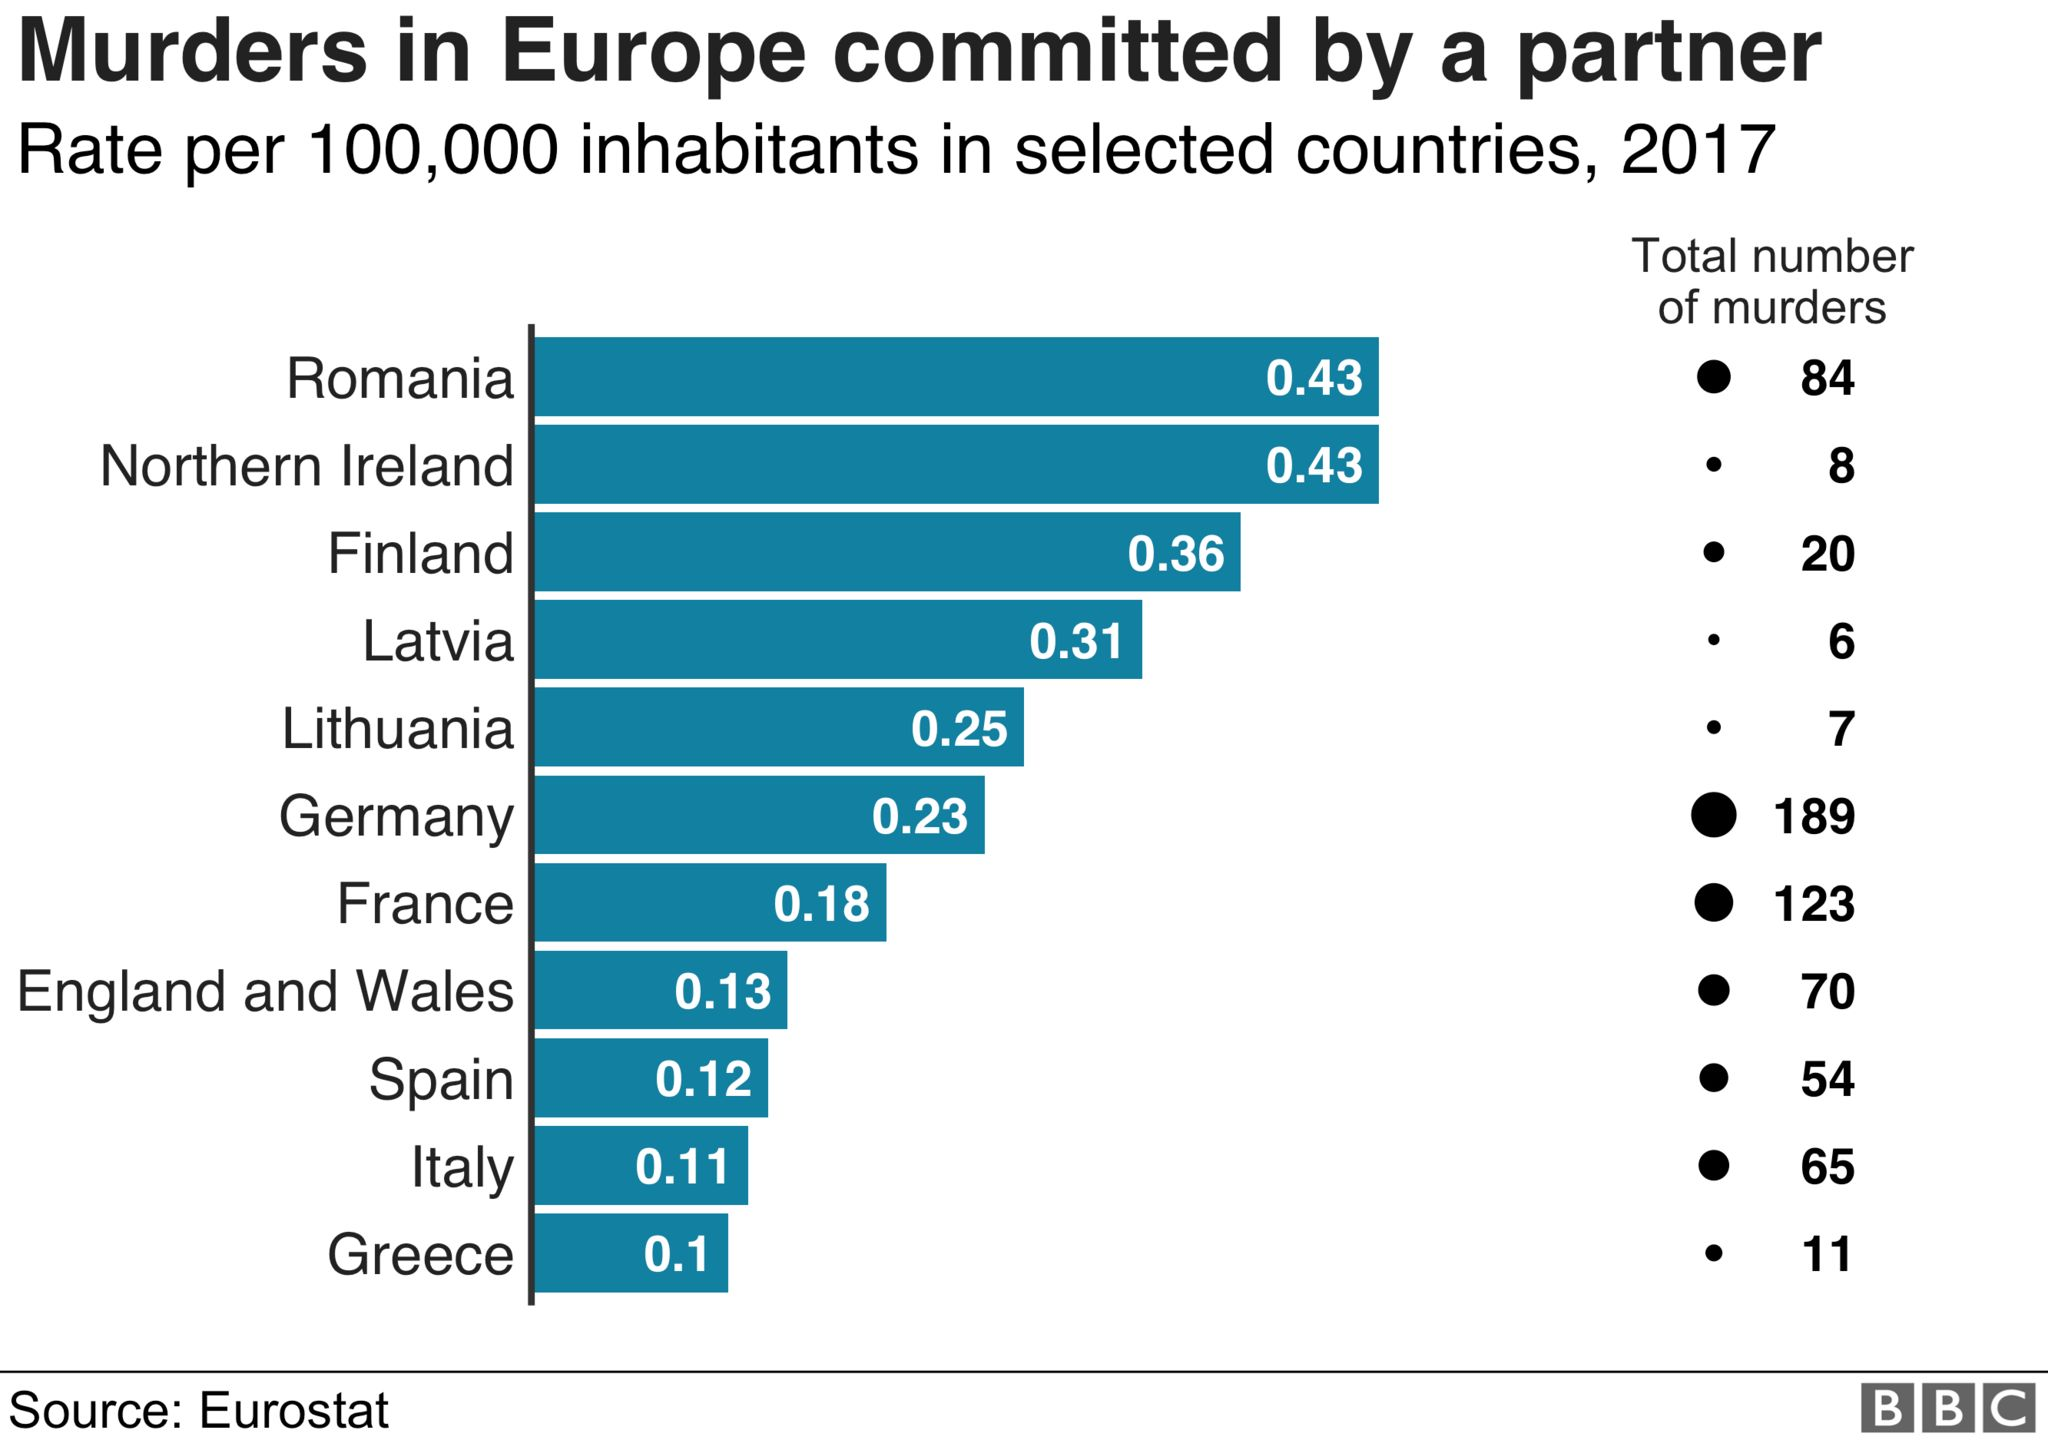 A graph showing the number of murders committed by a partner in a selection of European countries